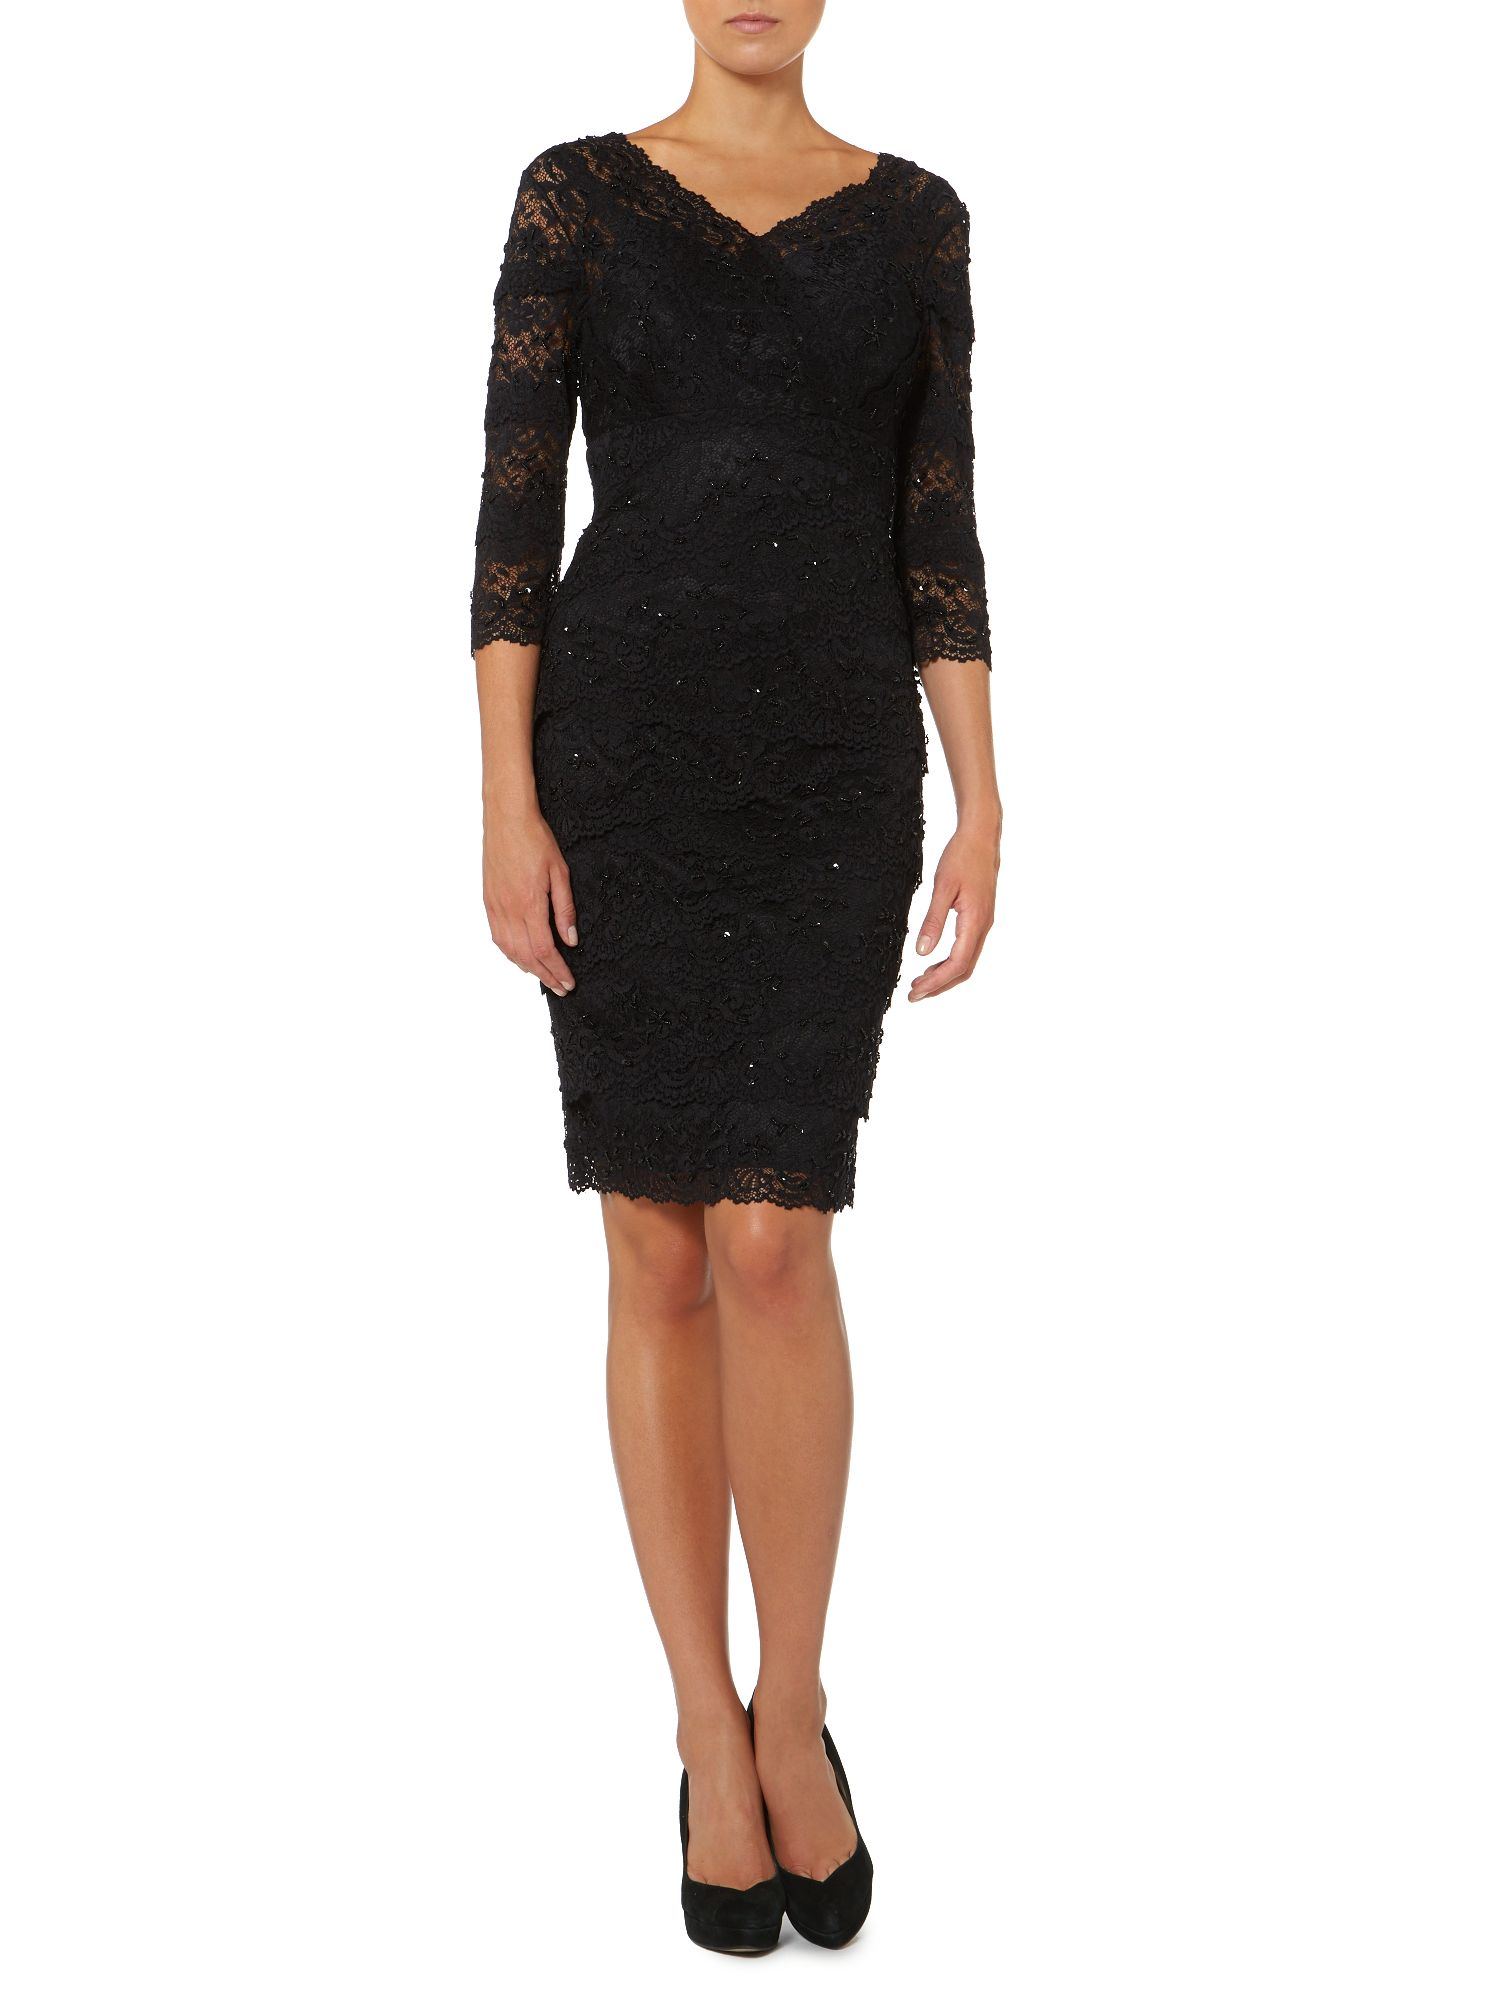 Beaded scallop lace dress